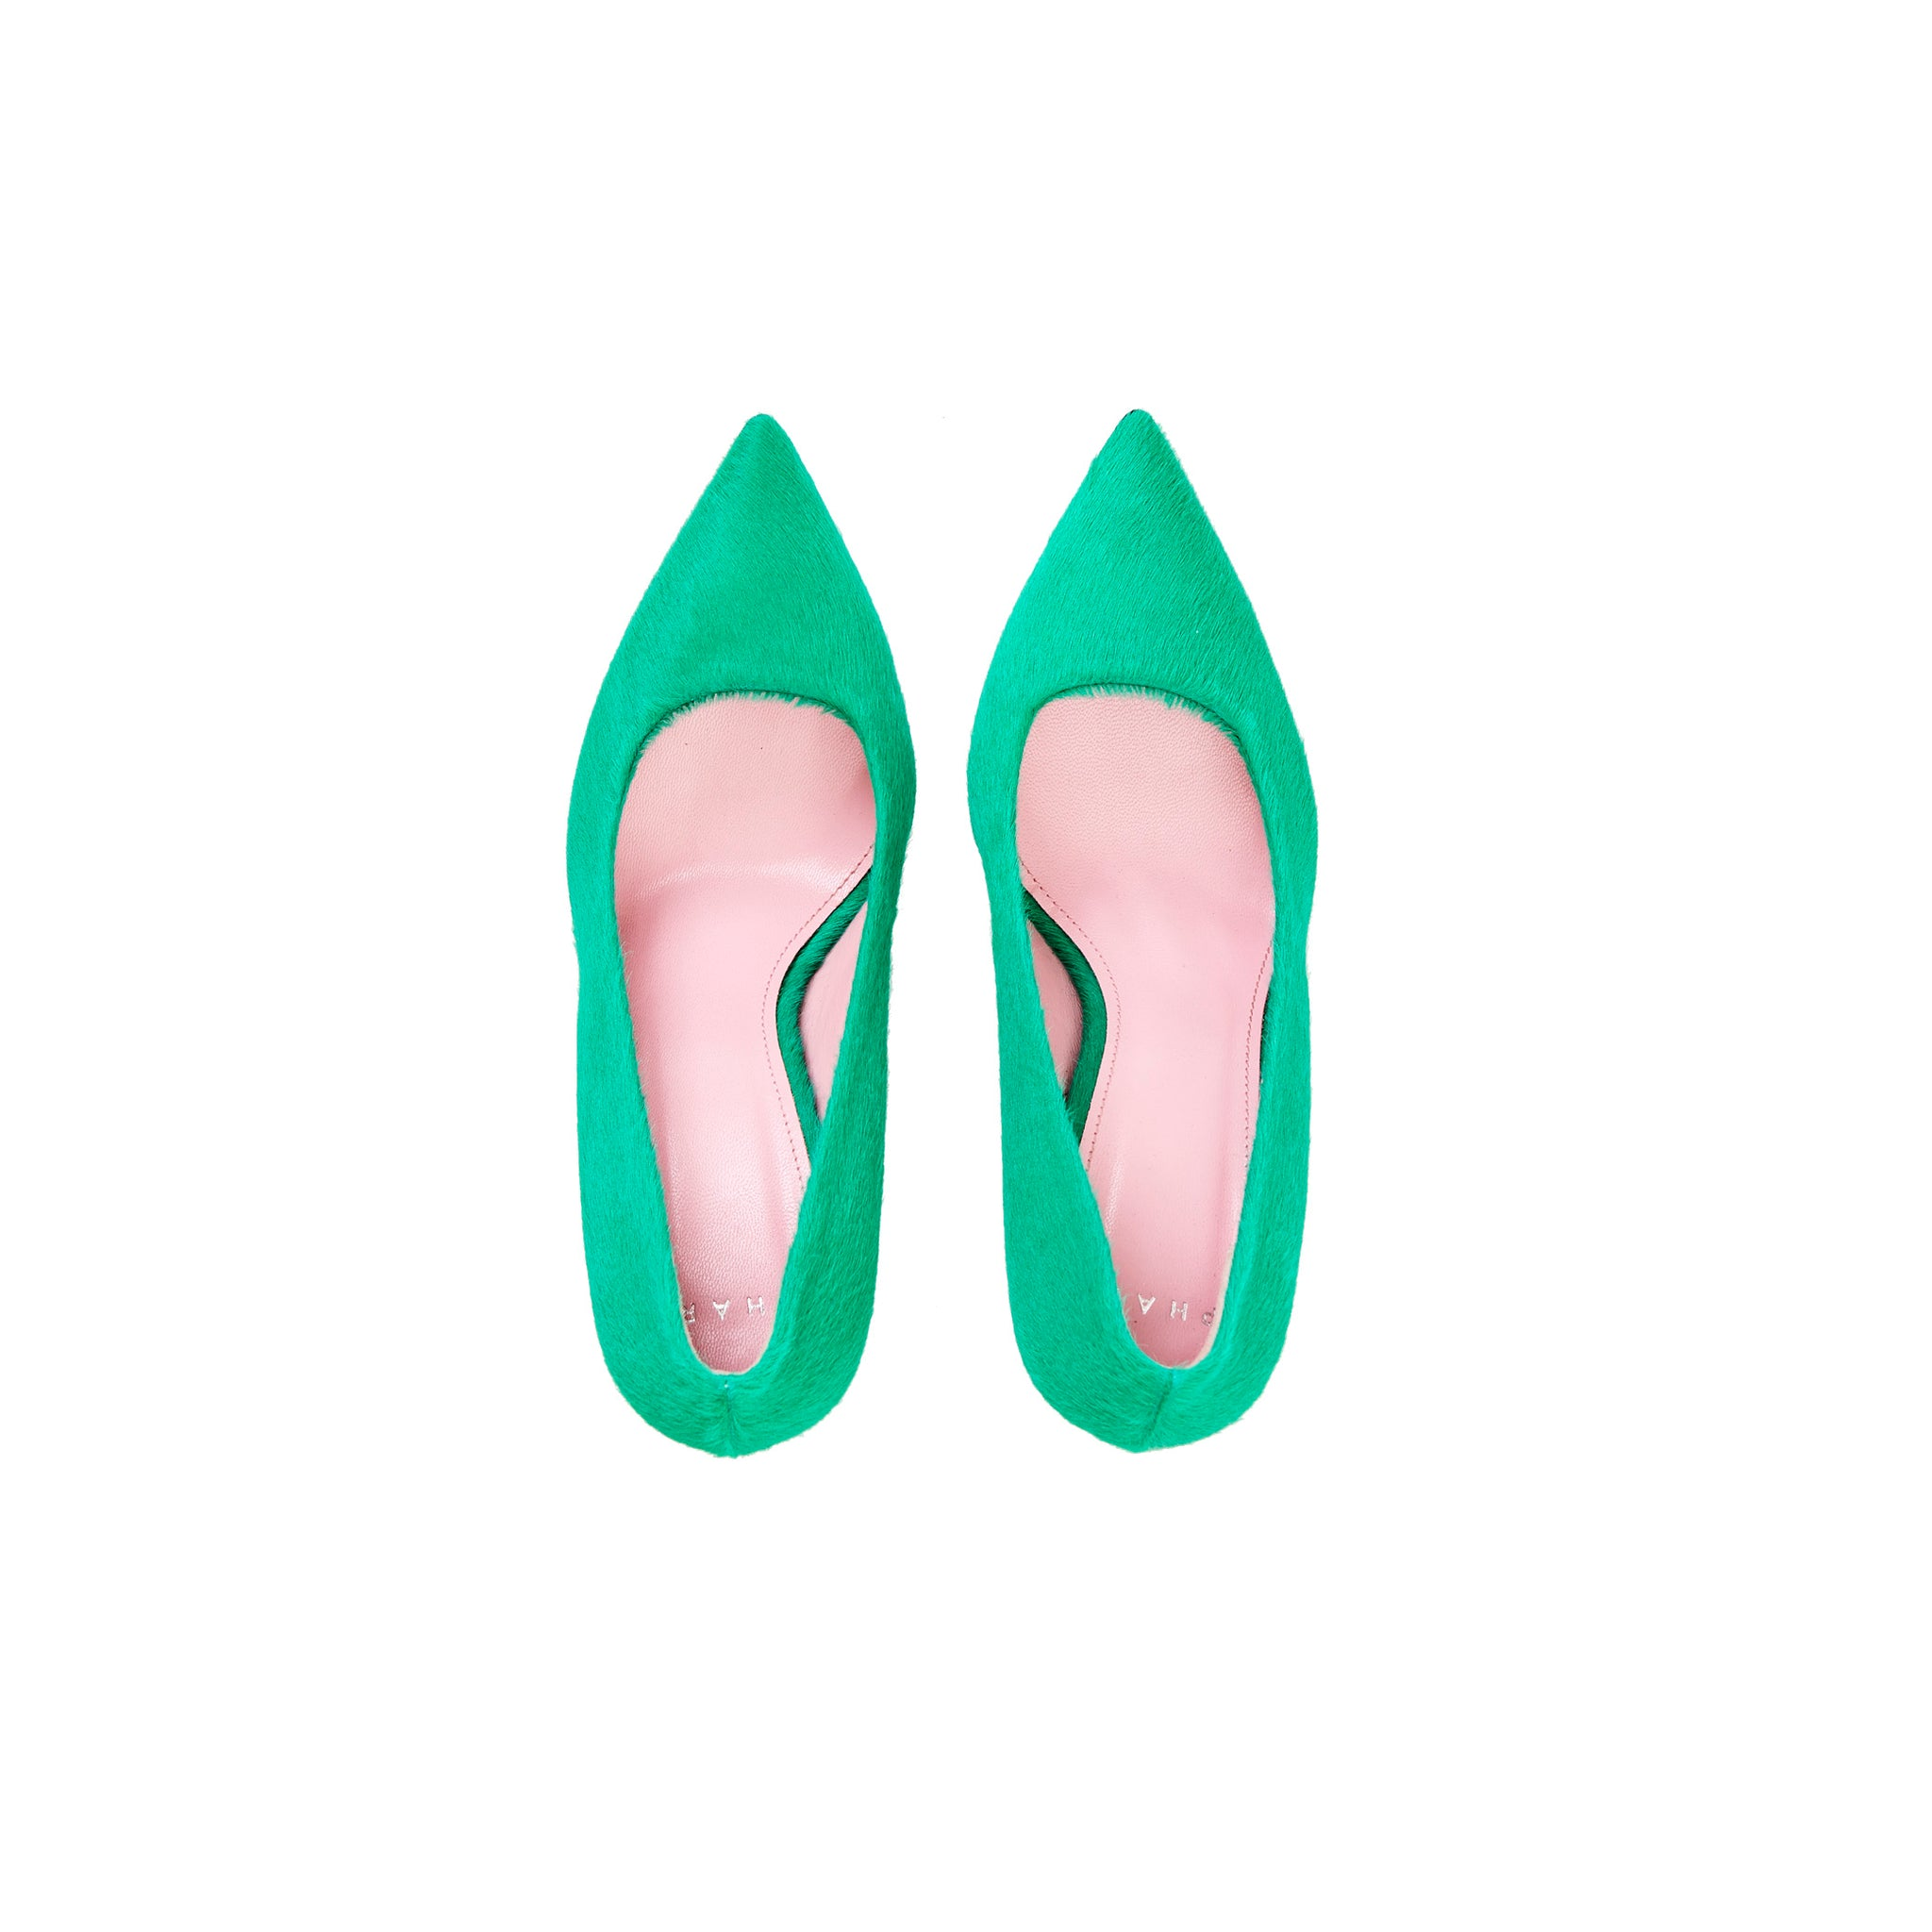 Phare slim heel pump in malachite pony hair top view